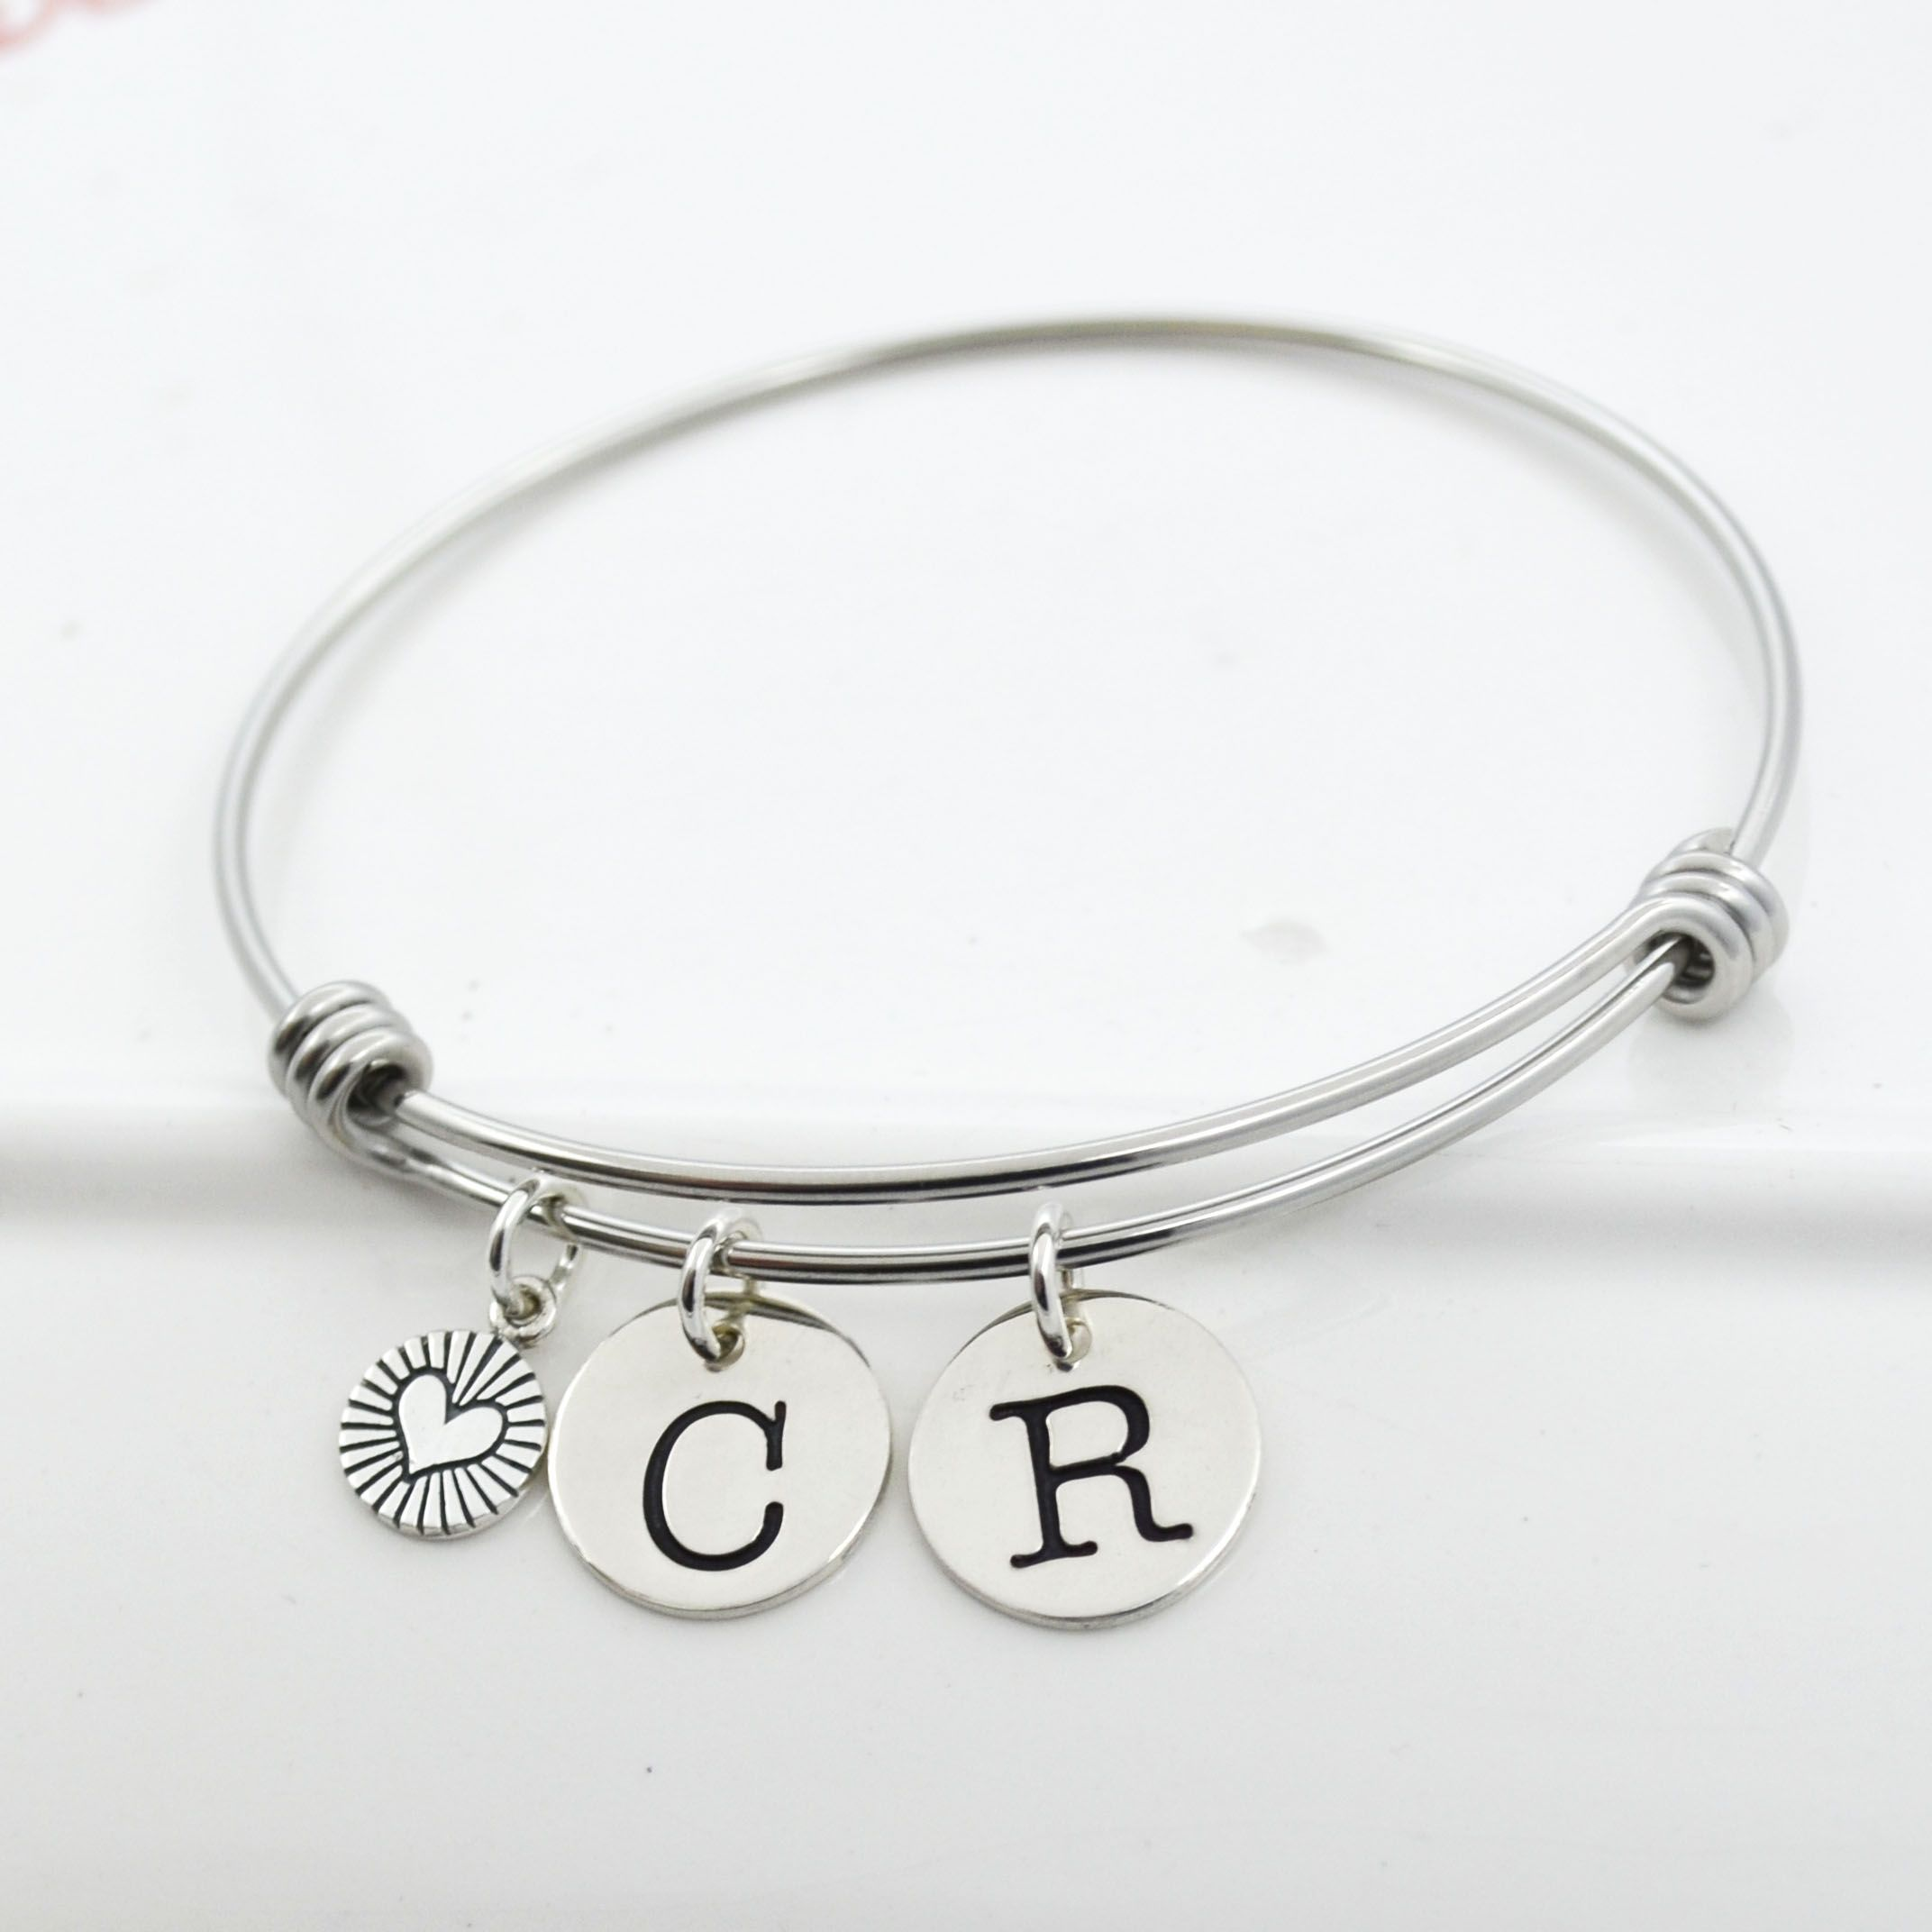 Buy A Hand Crafted Initial Bangle Charm Bracelet Couples Initial